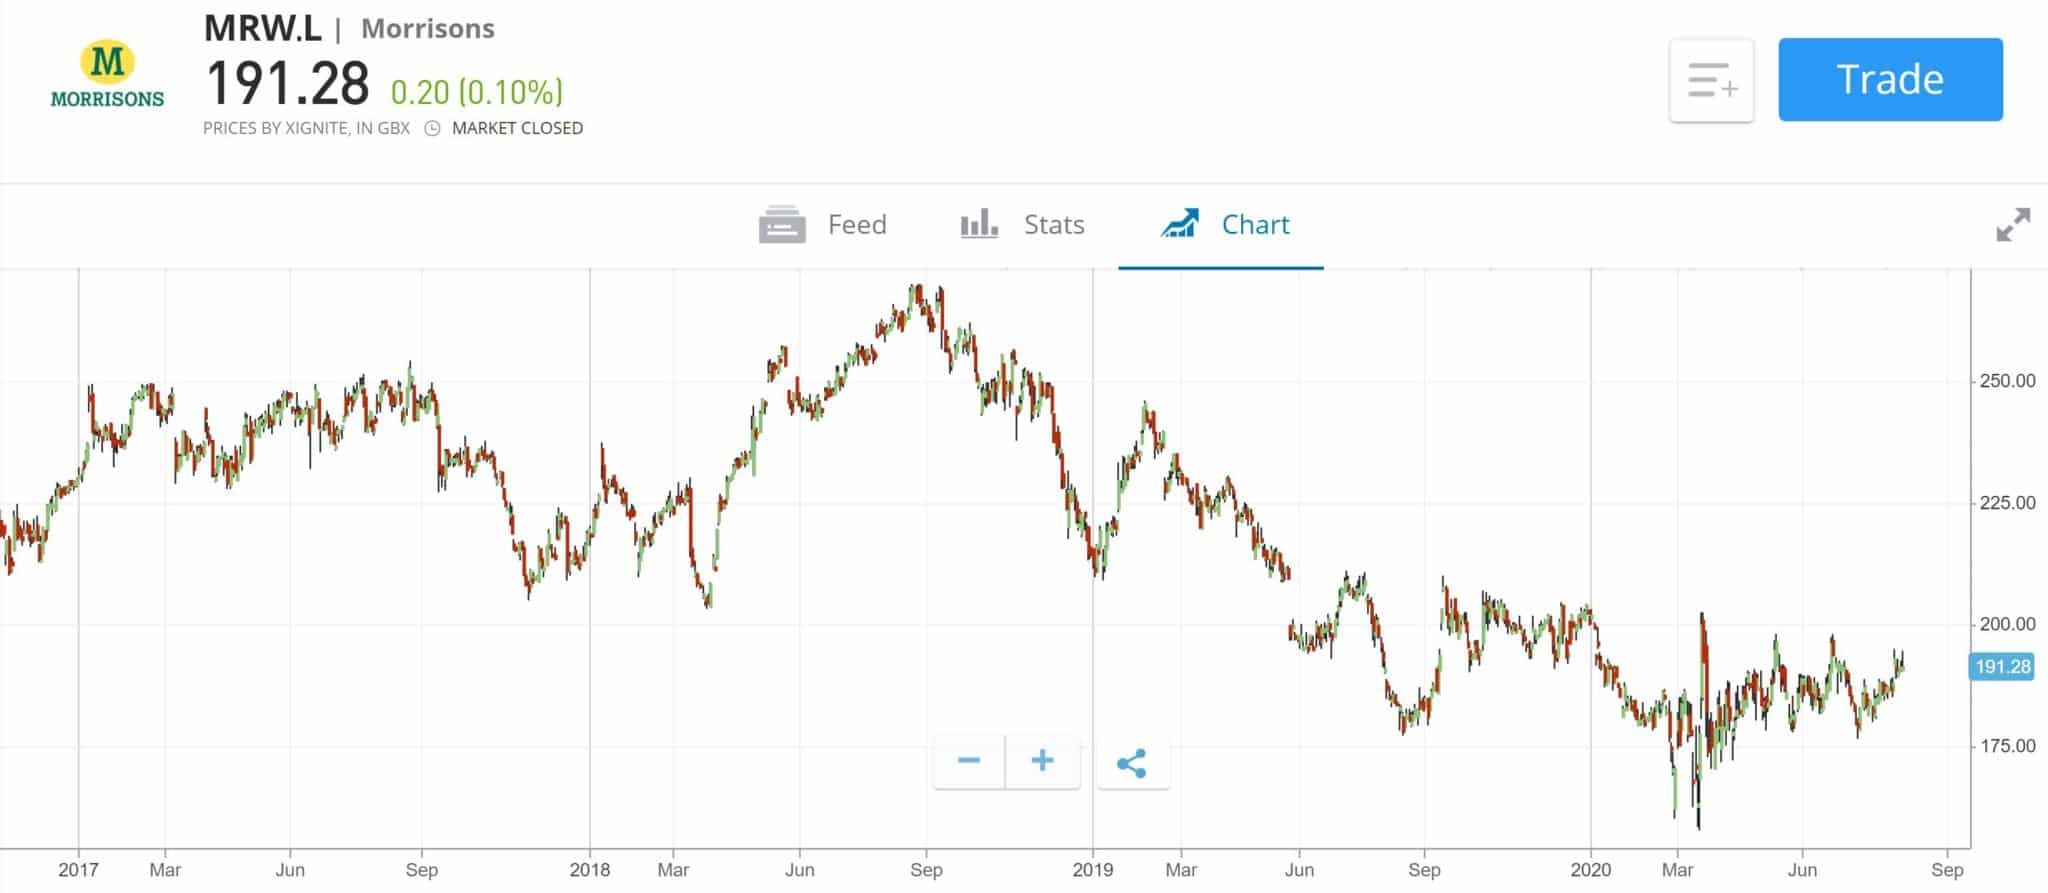 Morrisons stock price chart